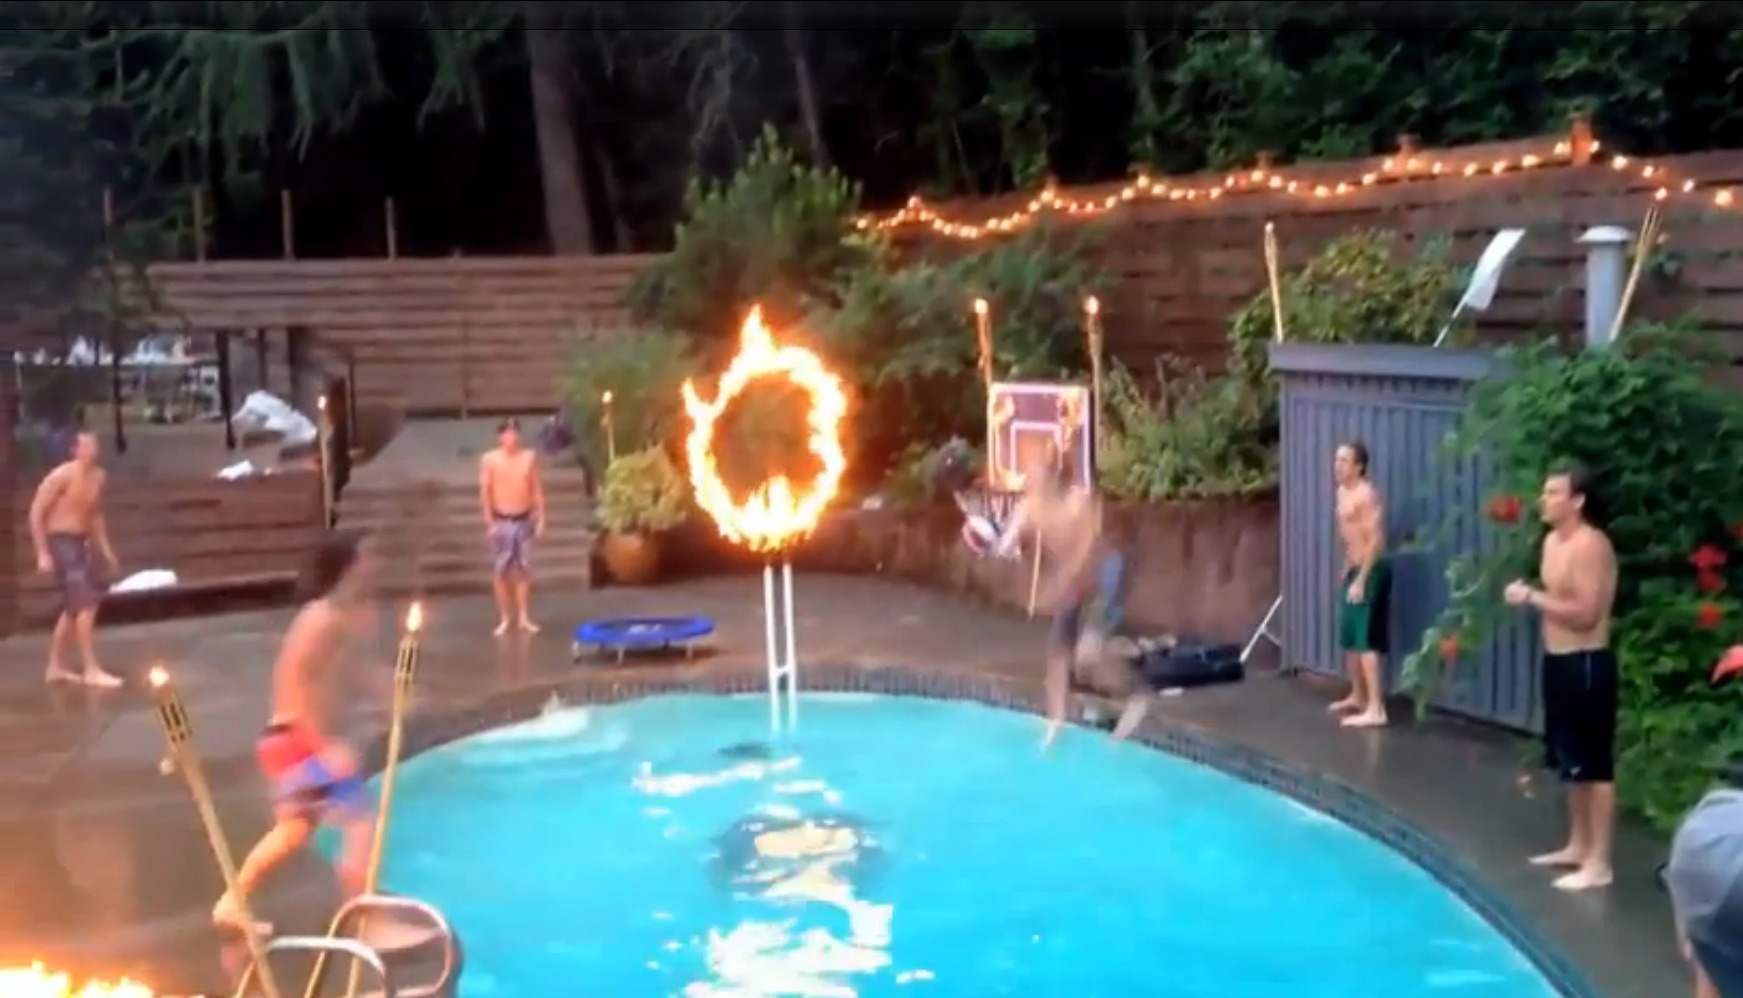 Jambroz heat things up with epic pool dunk for Epic pool show